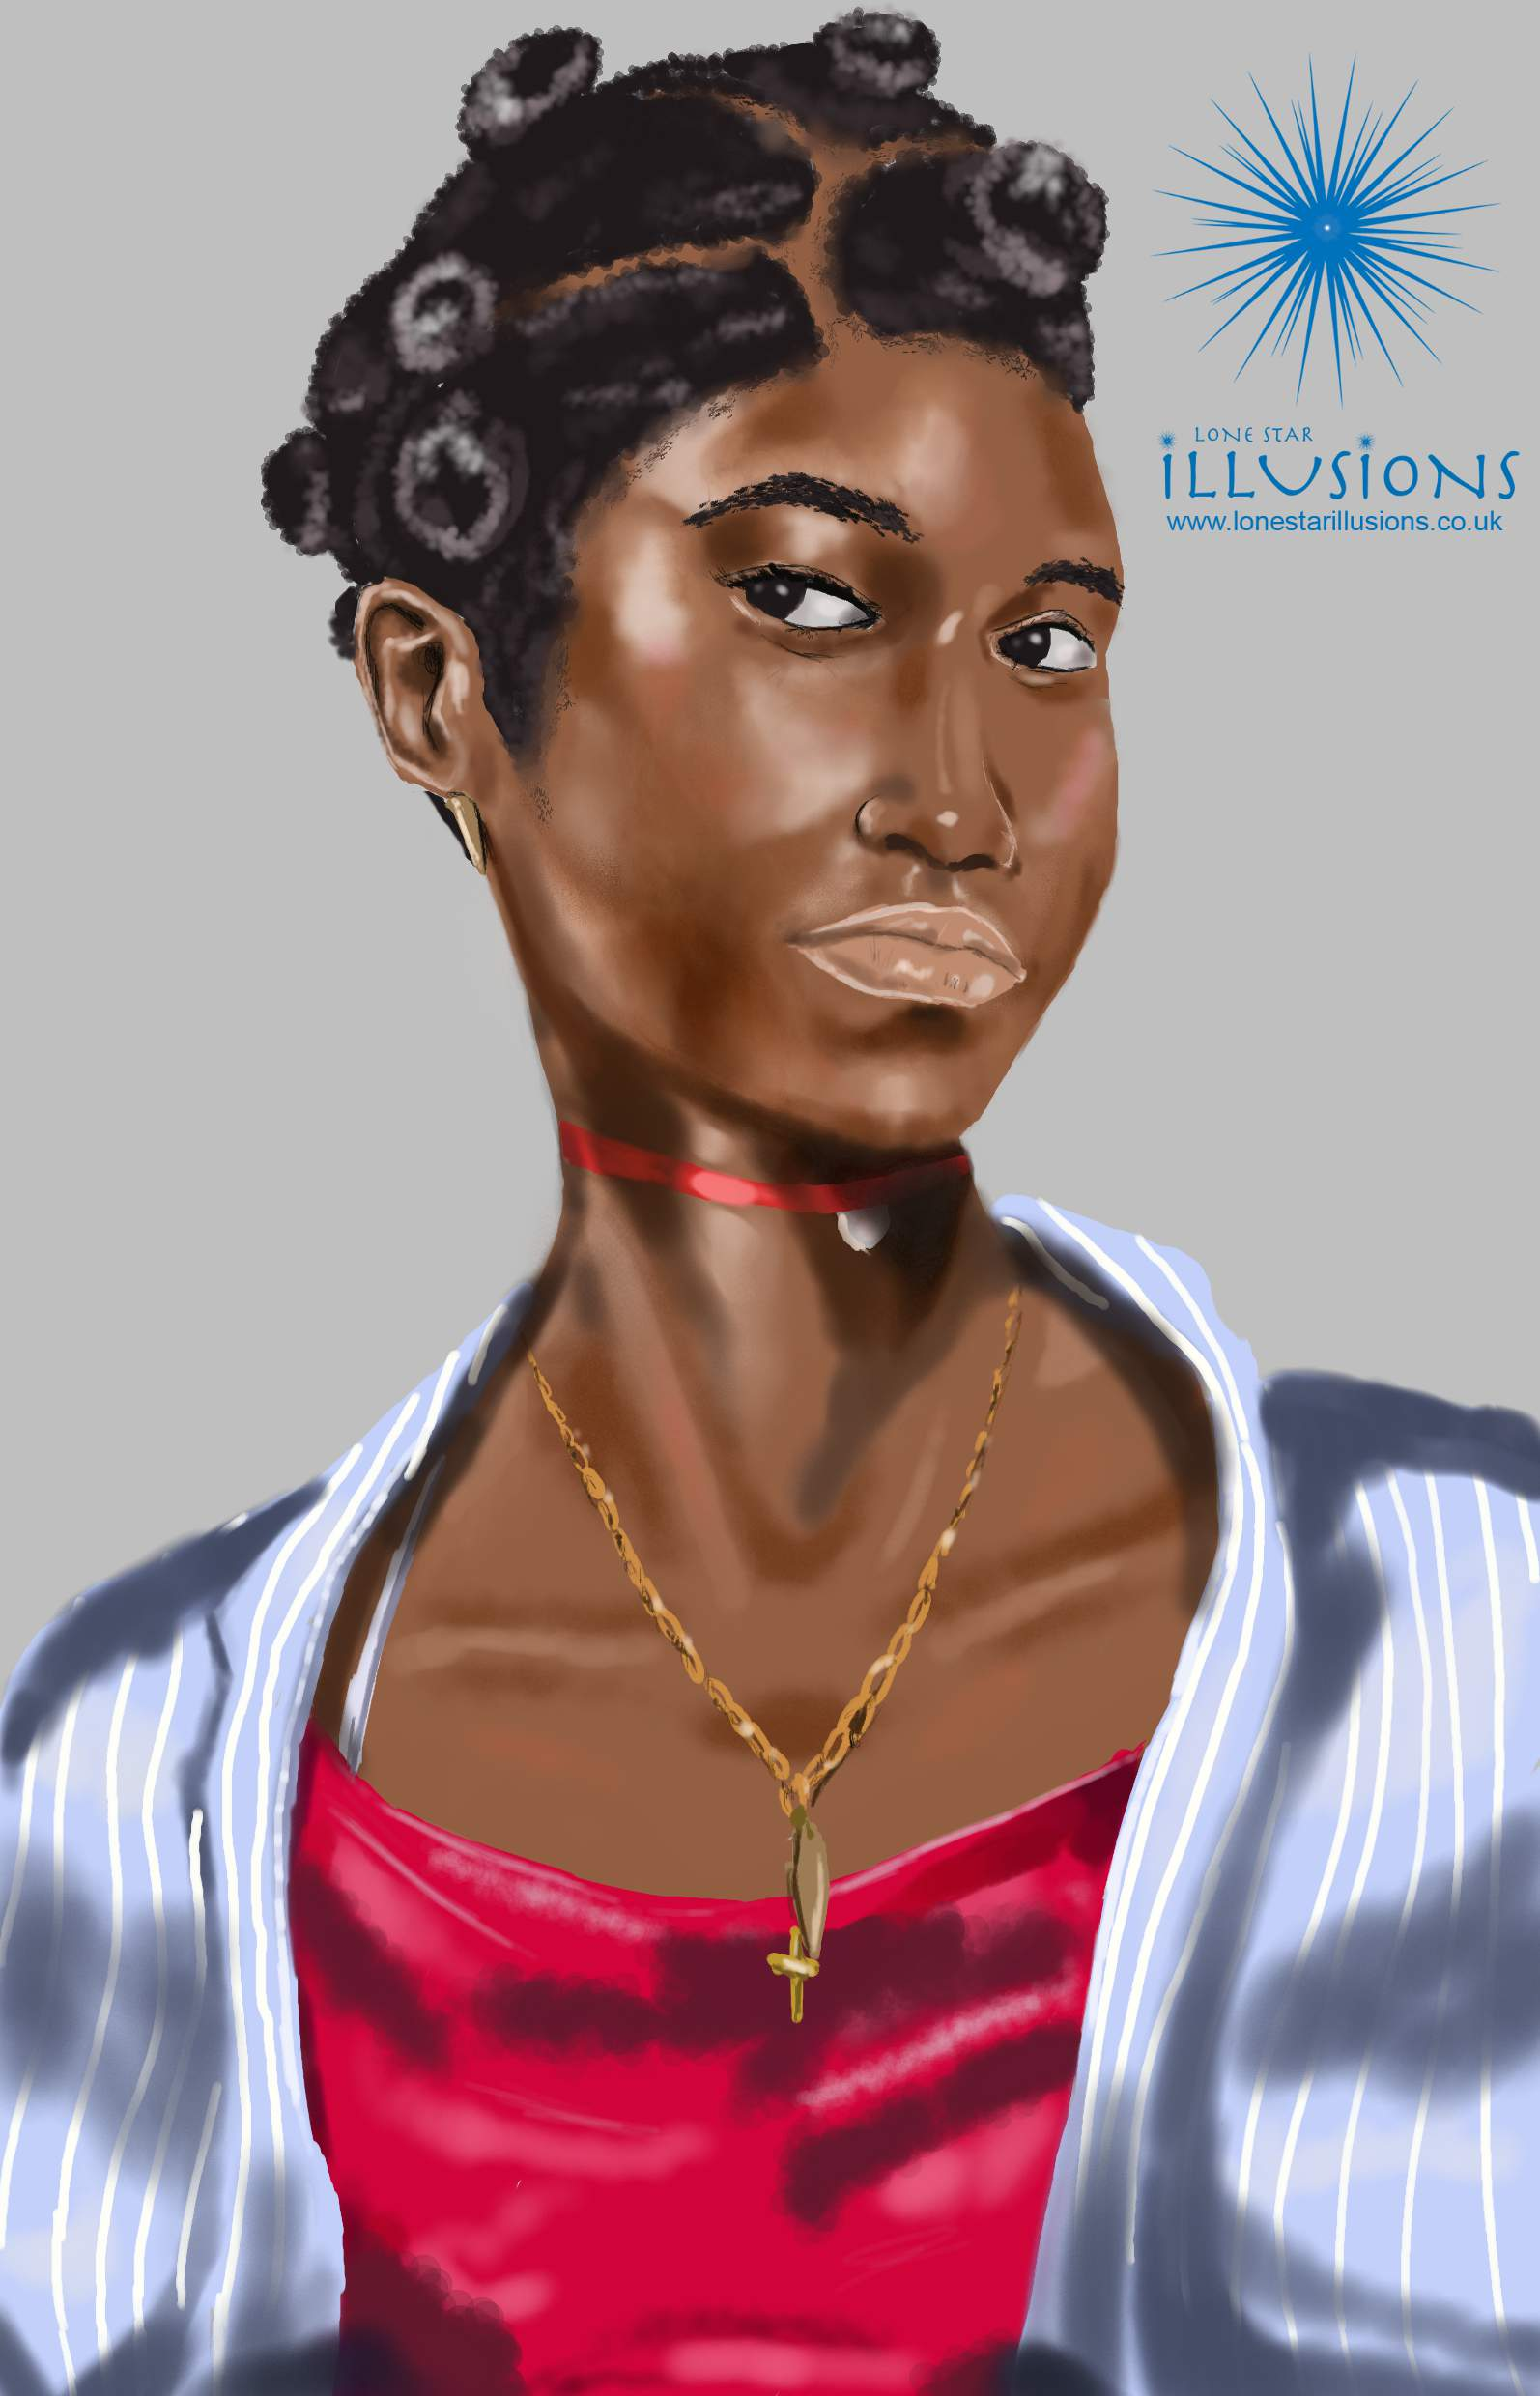 black female characters, graphic novel concepts, black digital art, black illustration, african illustration, concept art, woman with bantu knots, beautiful black women